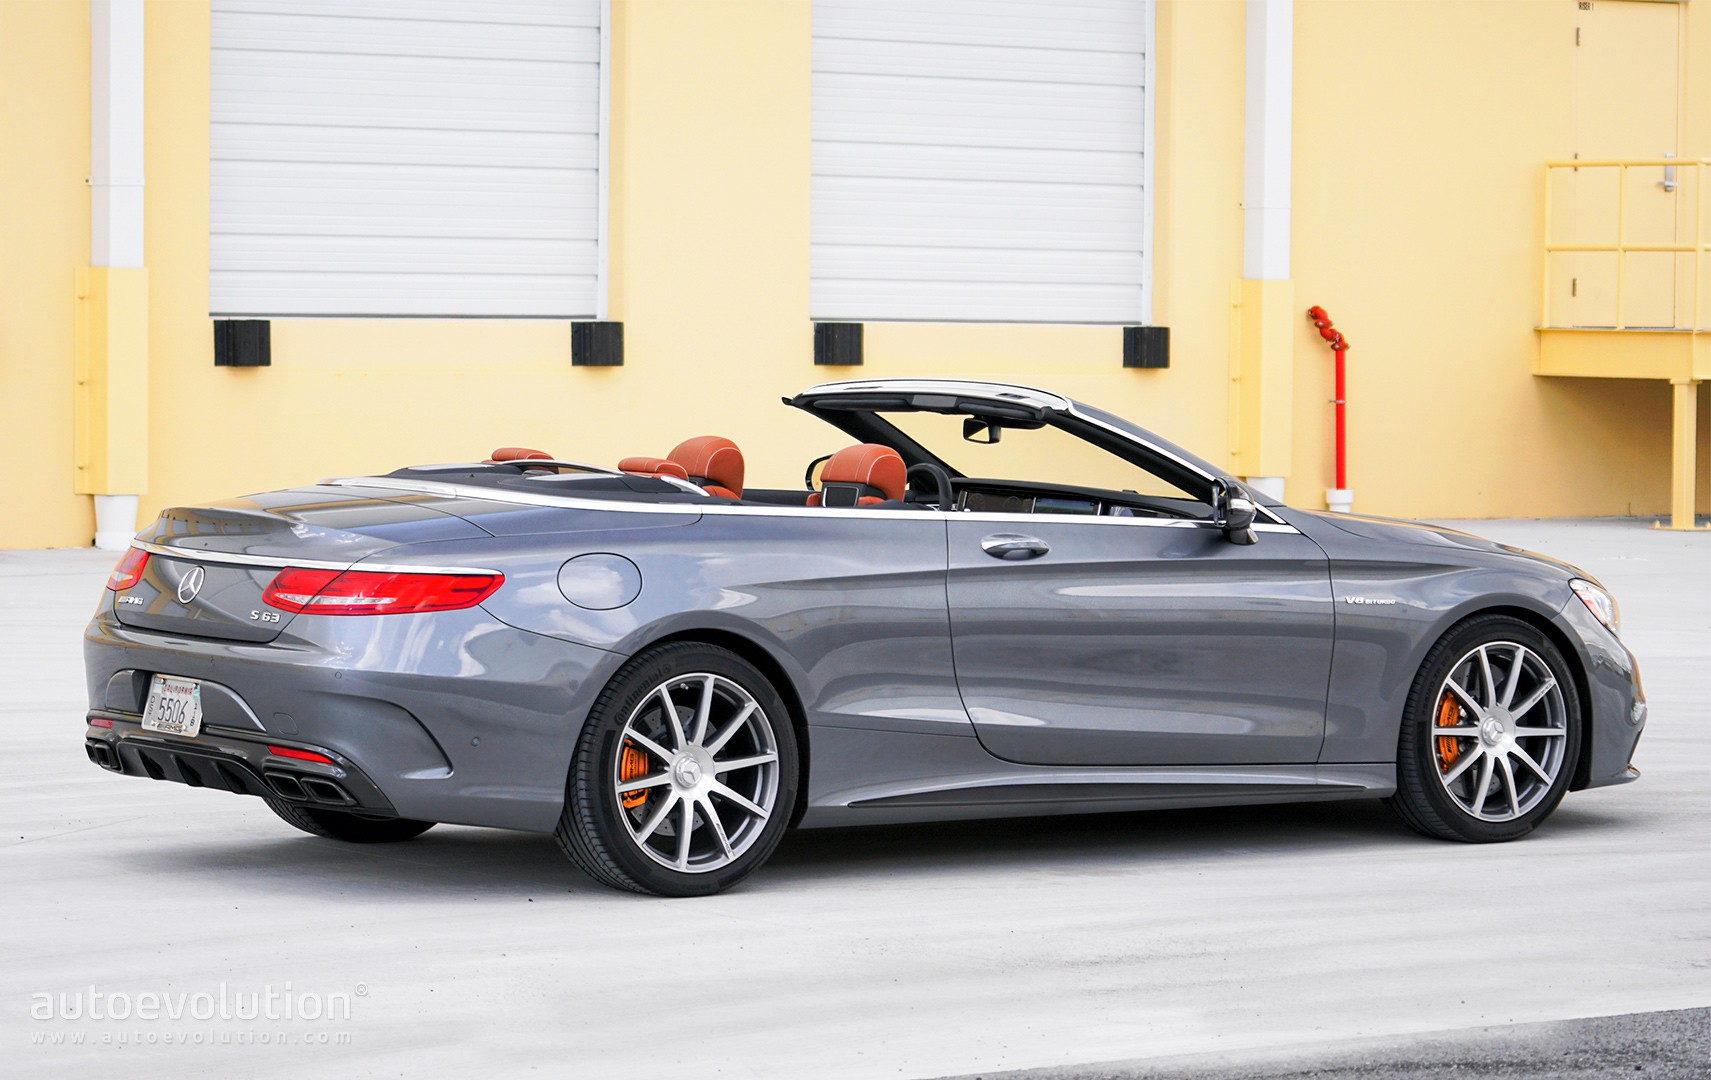 Mercedes Marco Polo 2008 >> Driven: 2017 Mercedes-AMG S63 Cabriolet - autoevolution